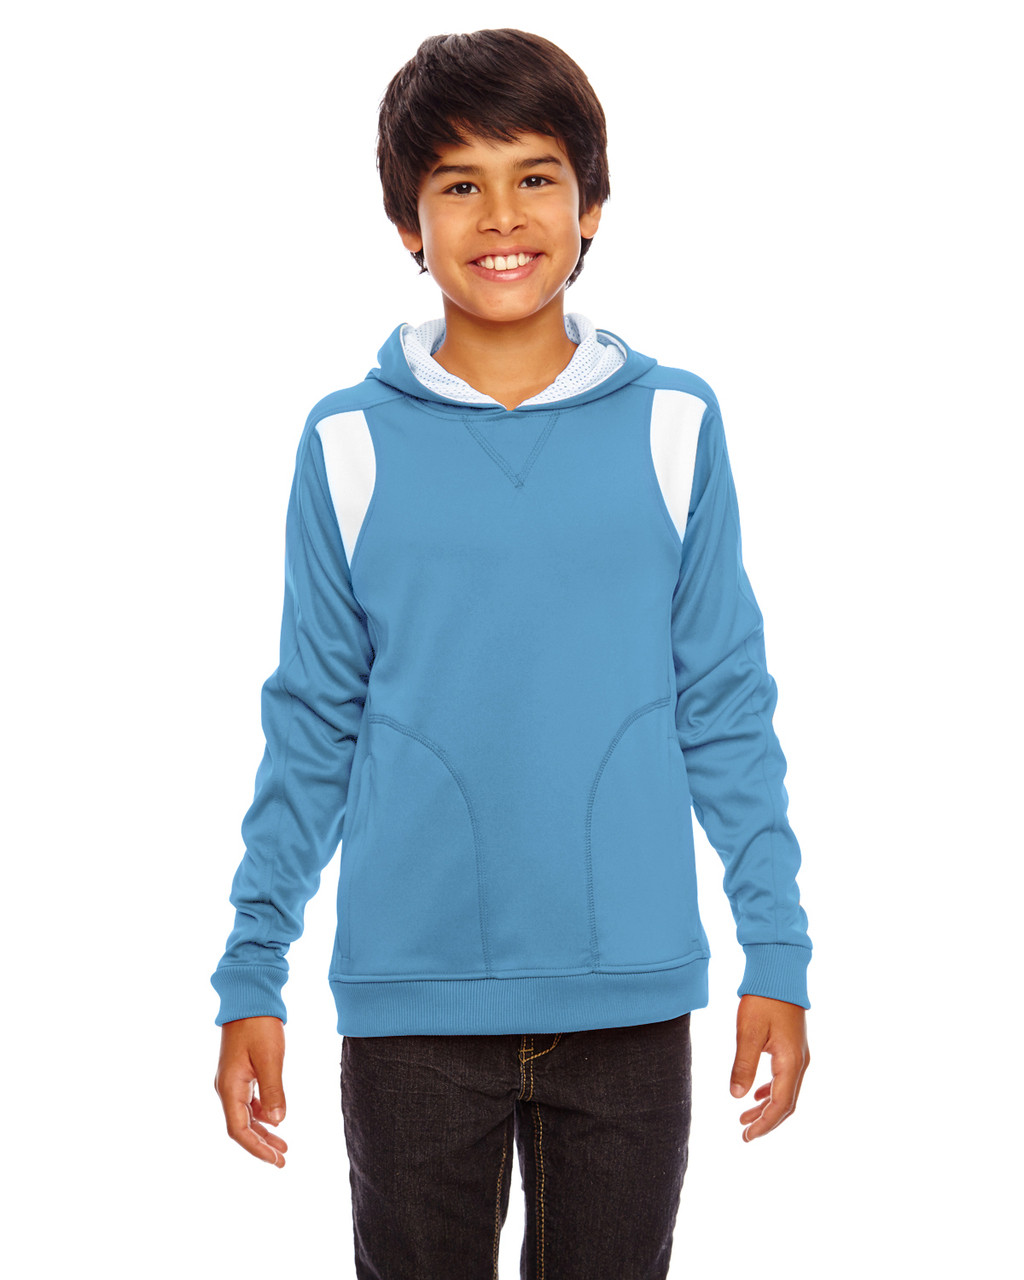 Light Blue/White - TT30Y Team 365 Youth Elite Performance Hoodie | BlankClothing.ca